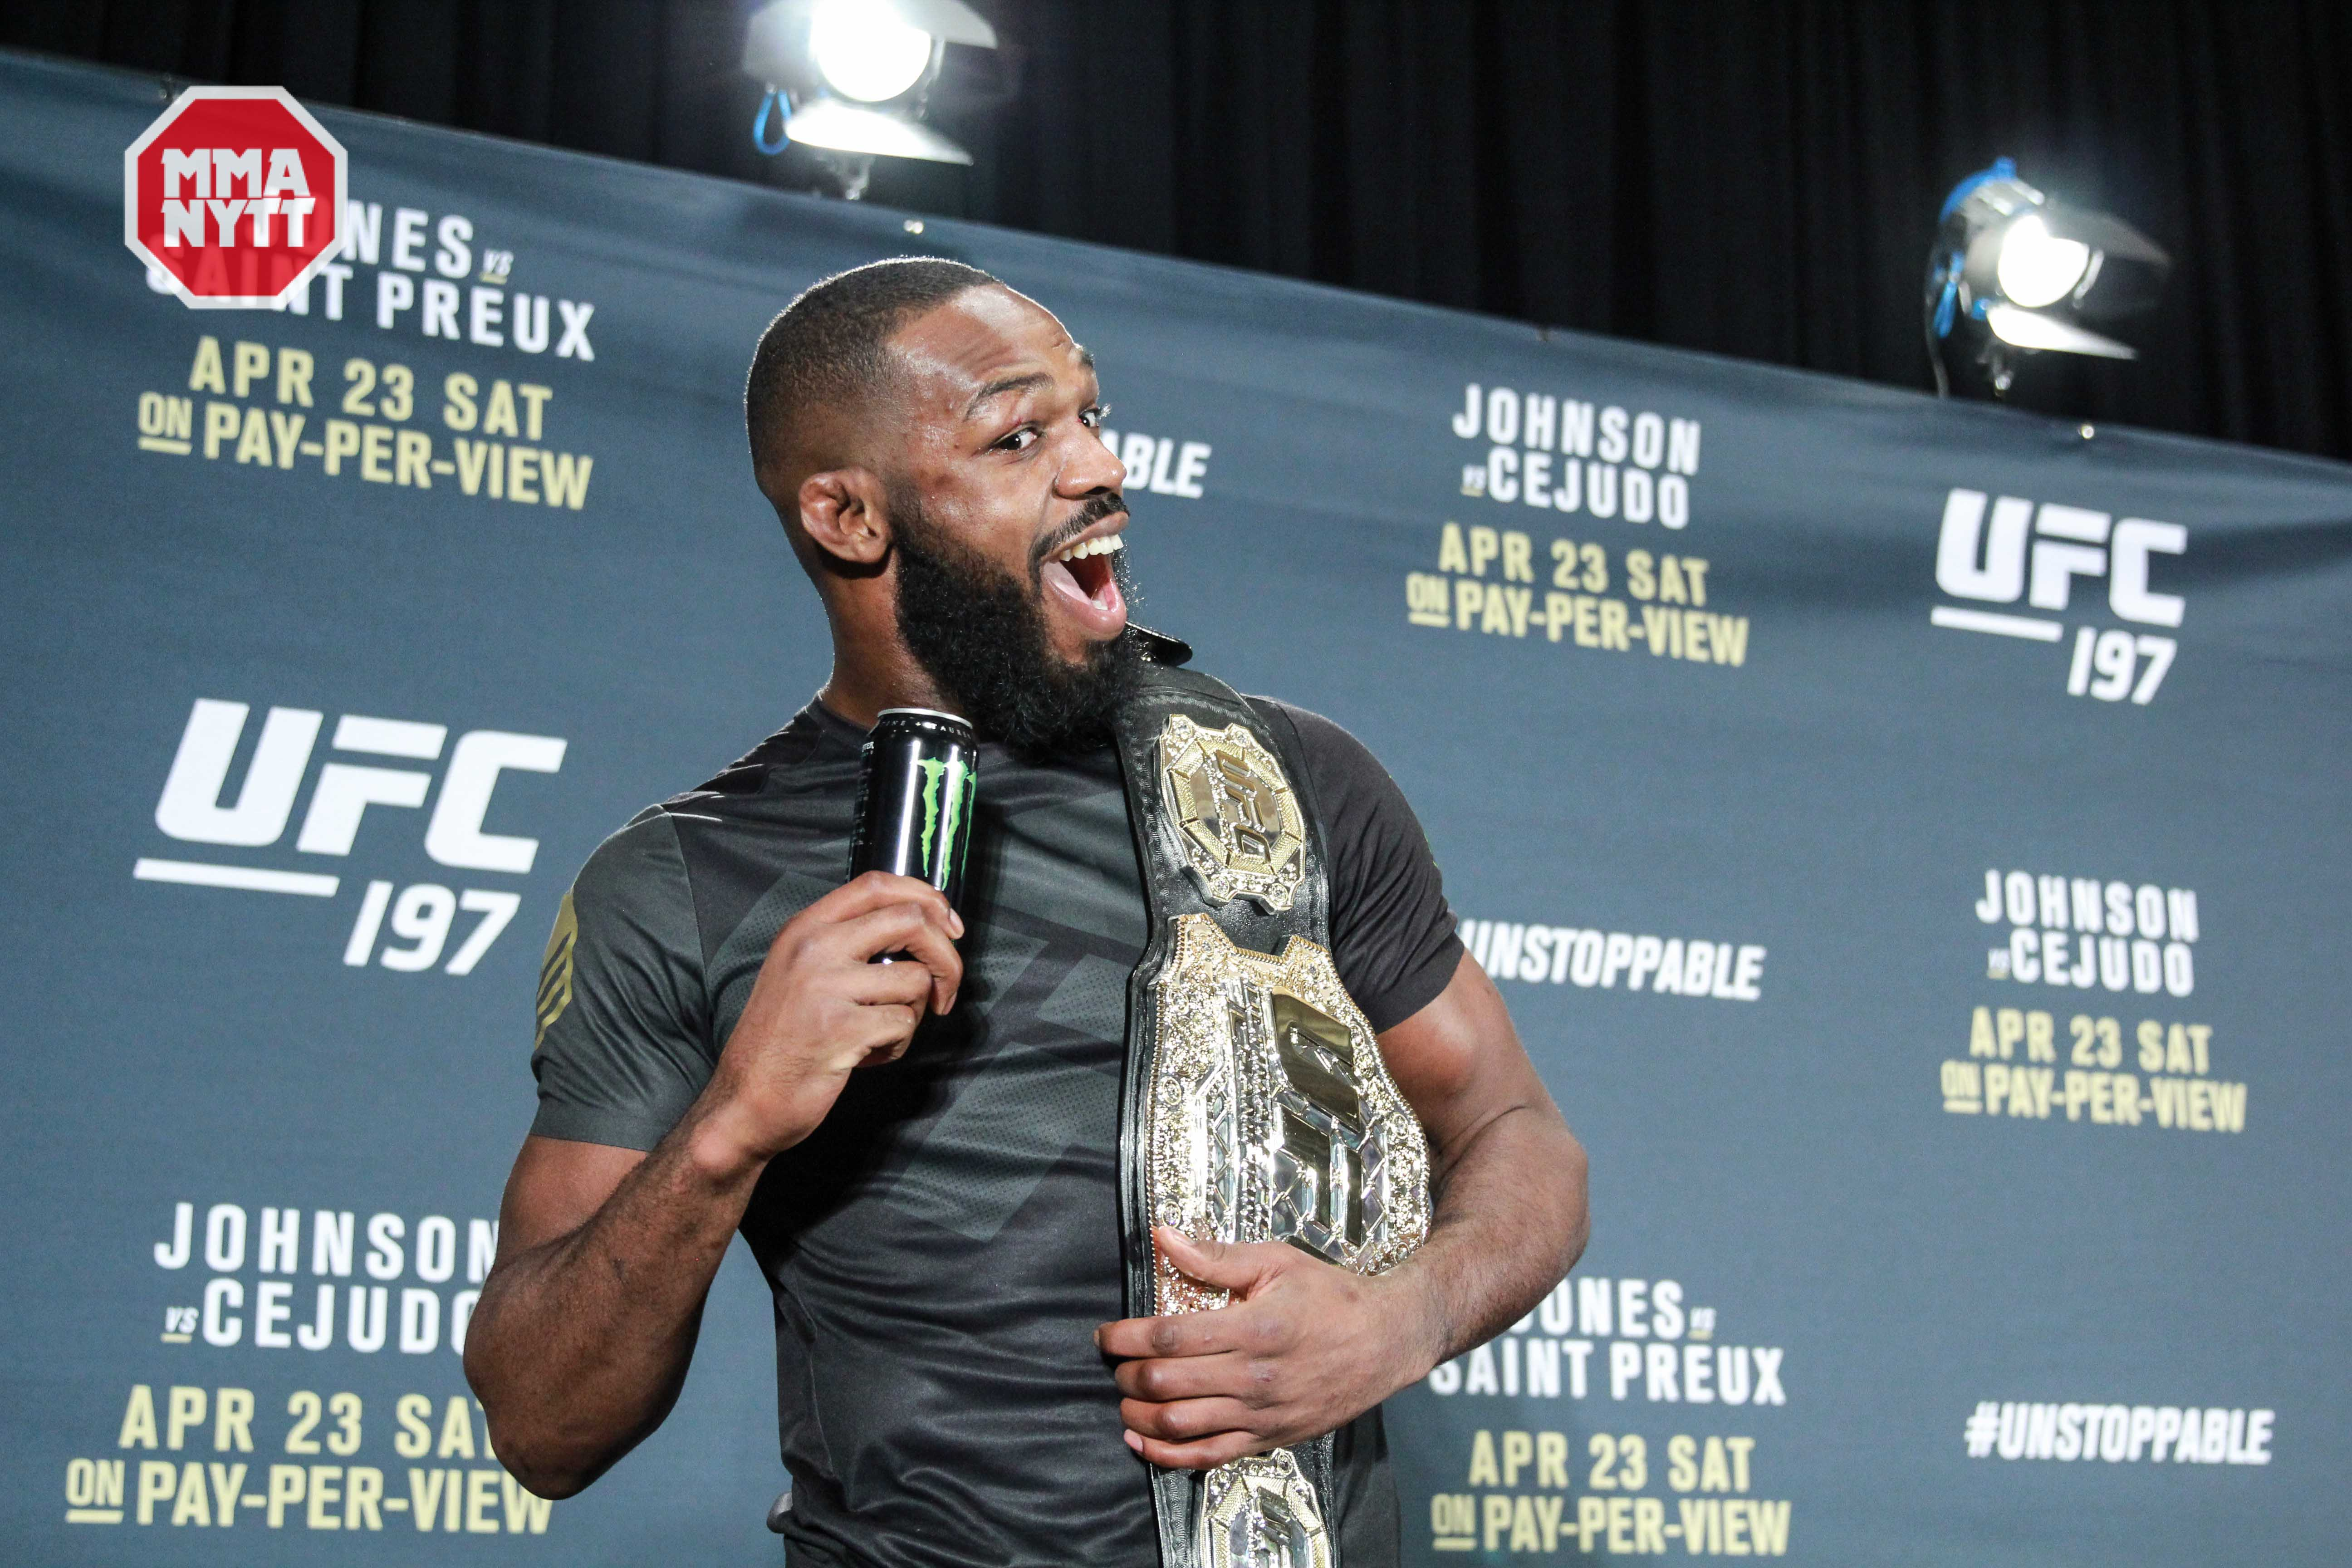 UFC 197 Jon Jones MMAnytt.se UFC post pressconfrence 2016-04-23 las vegas nevada mgm PHOTO MAZDAK CAVIAN_-31